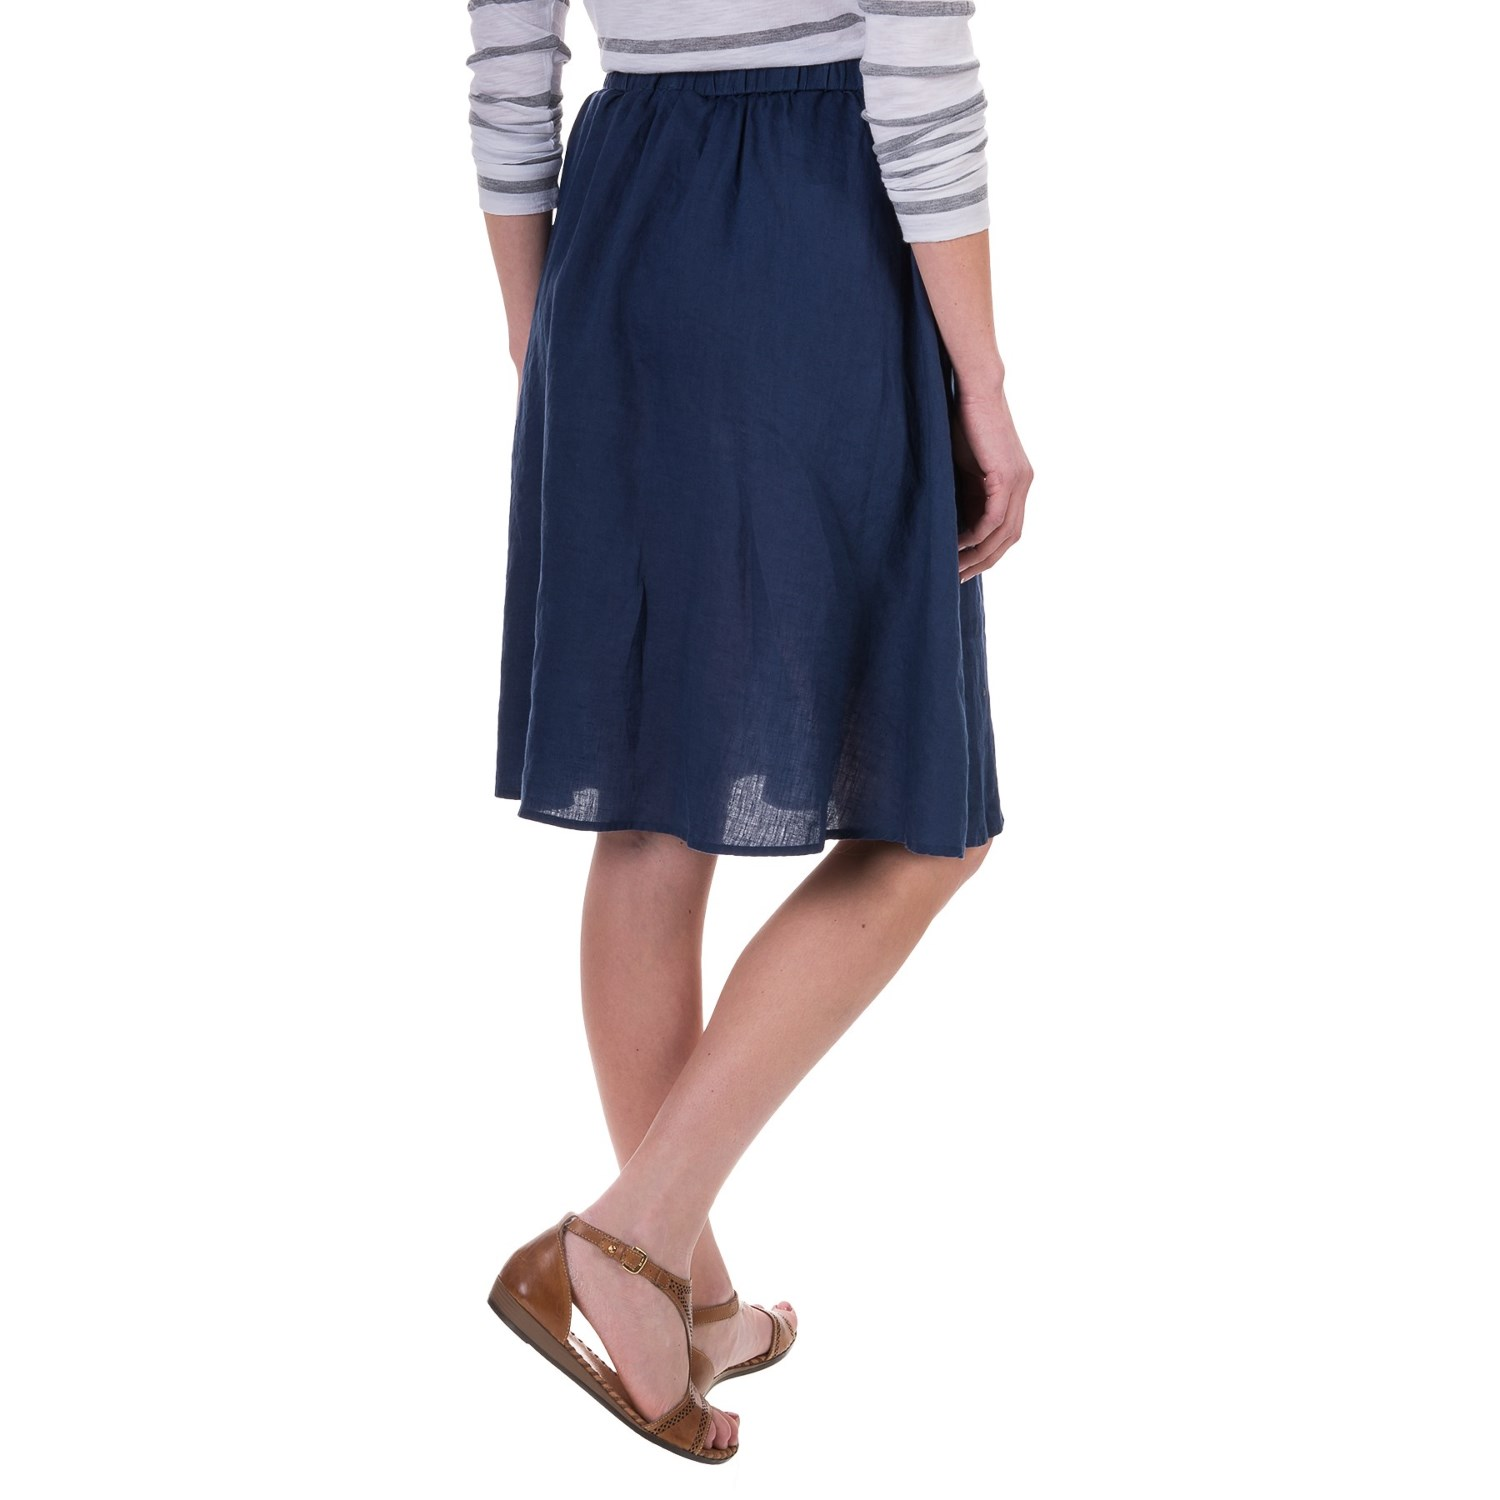 St. Tropez West Linen A-Line Skirt (For Women) - Save 30%